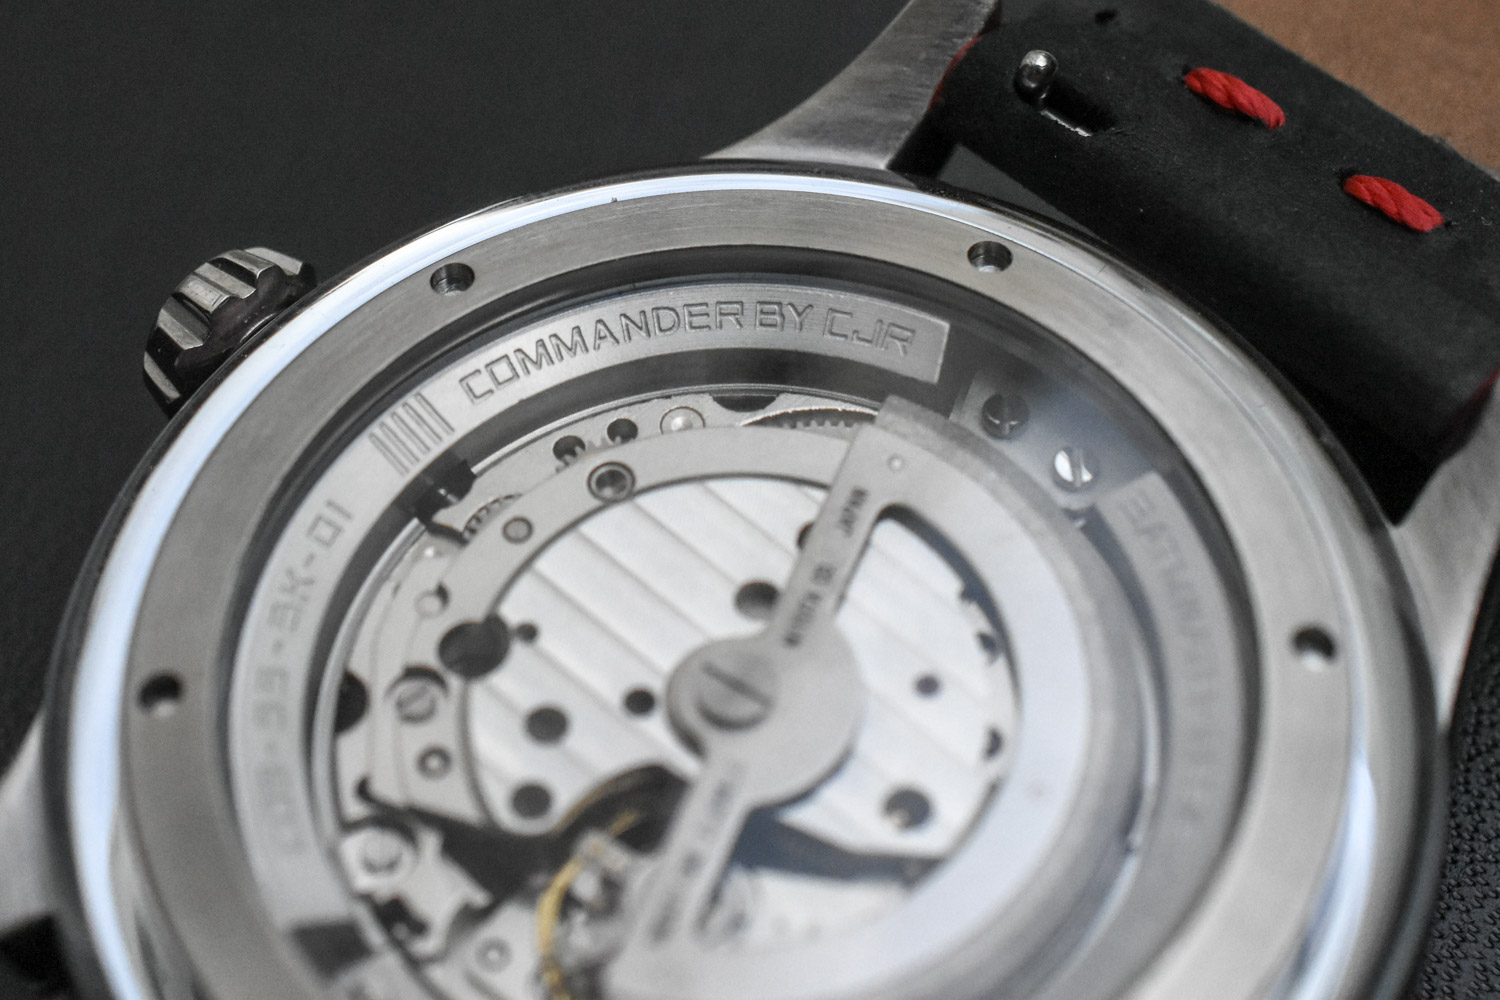 CJR Commander Series Watch kickstarter